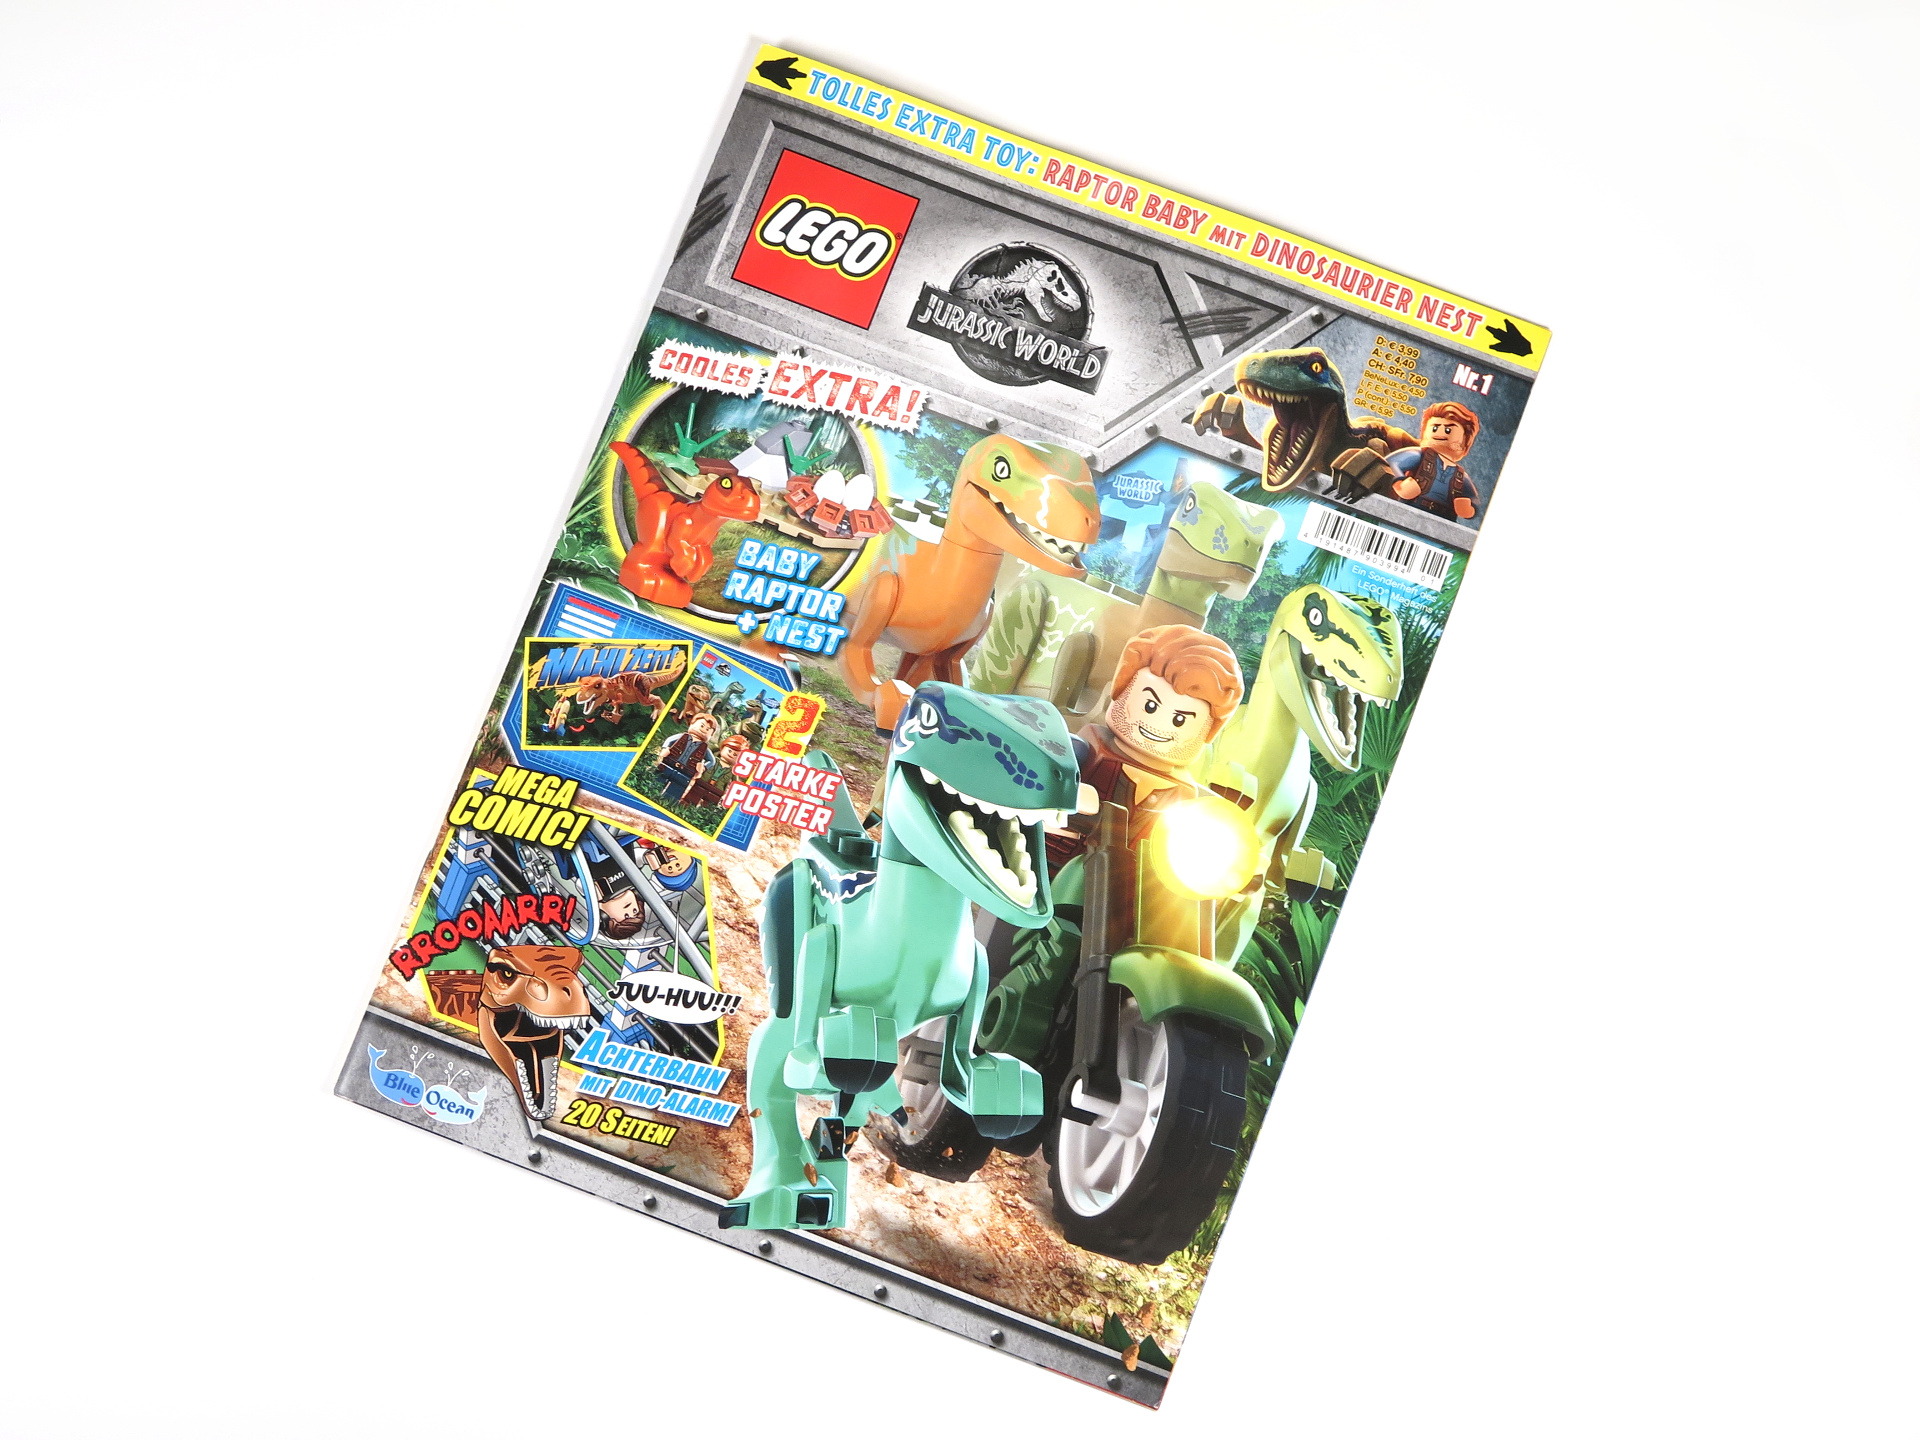 LEGO® Jurassic World™ Magazin Nr. 1 - Cover Magazin ohne Polybag | ©2018 Brickzeit